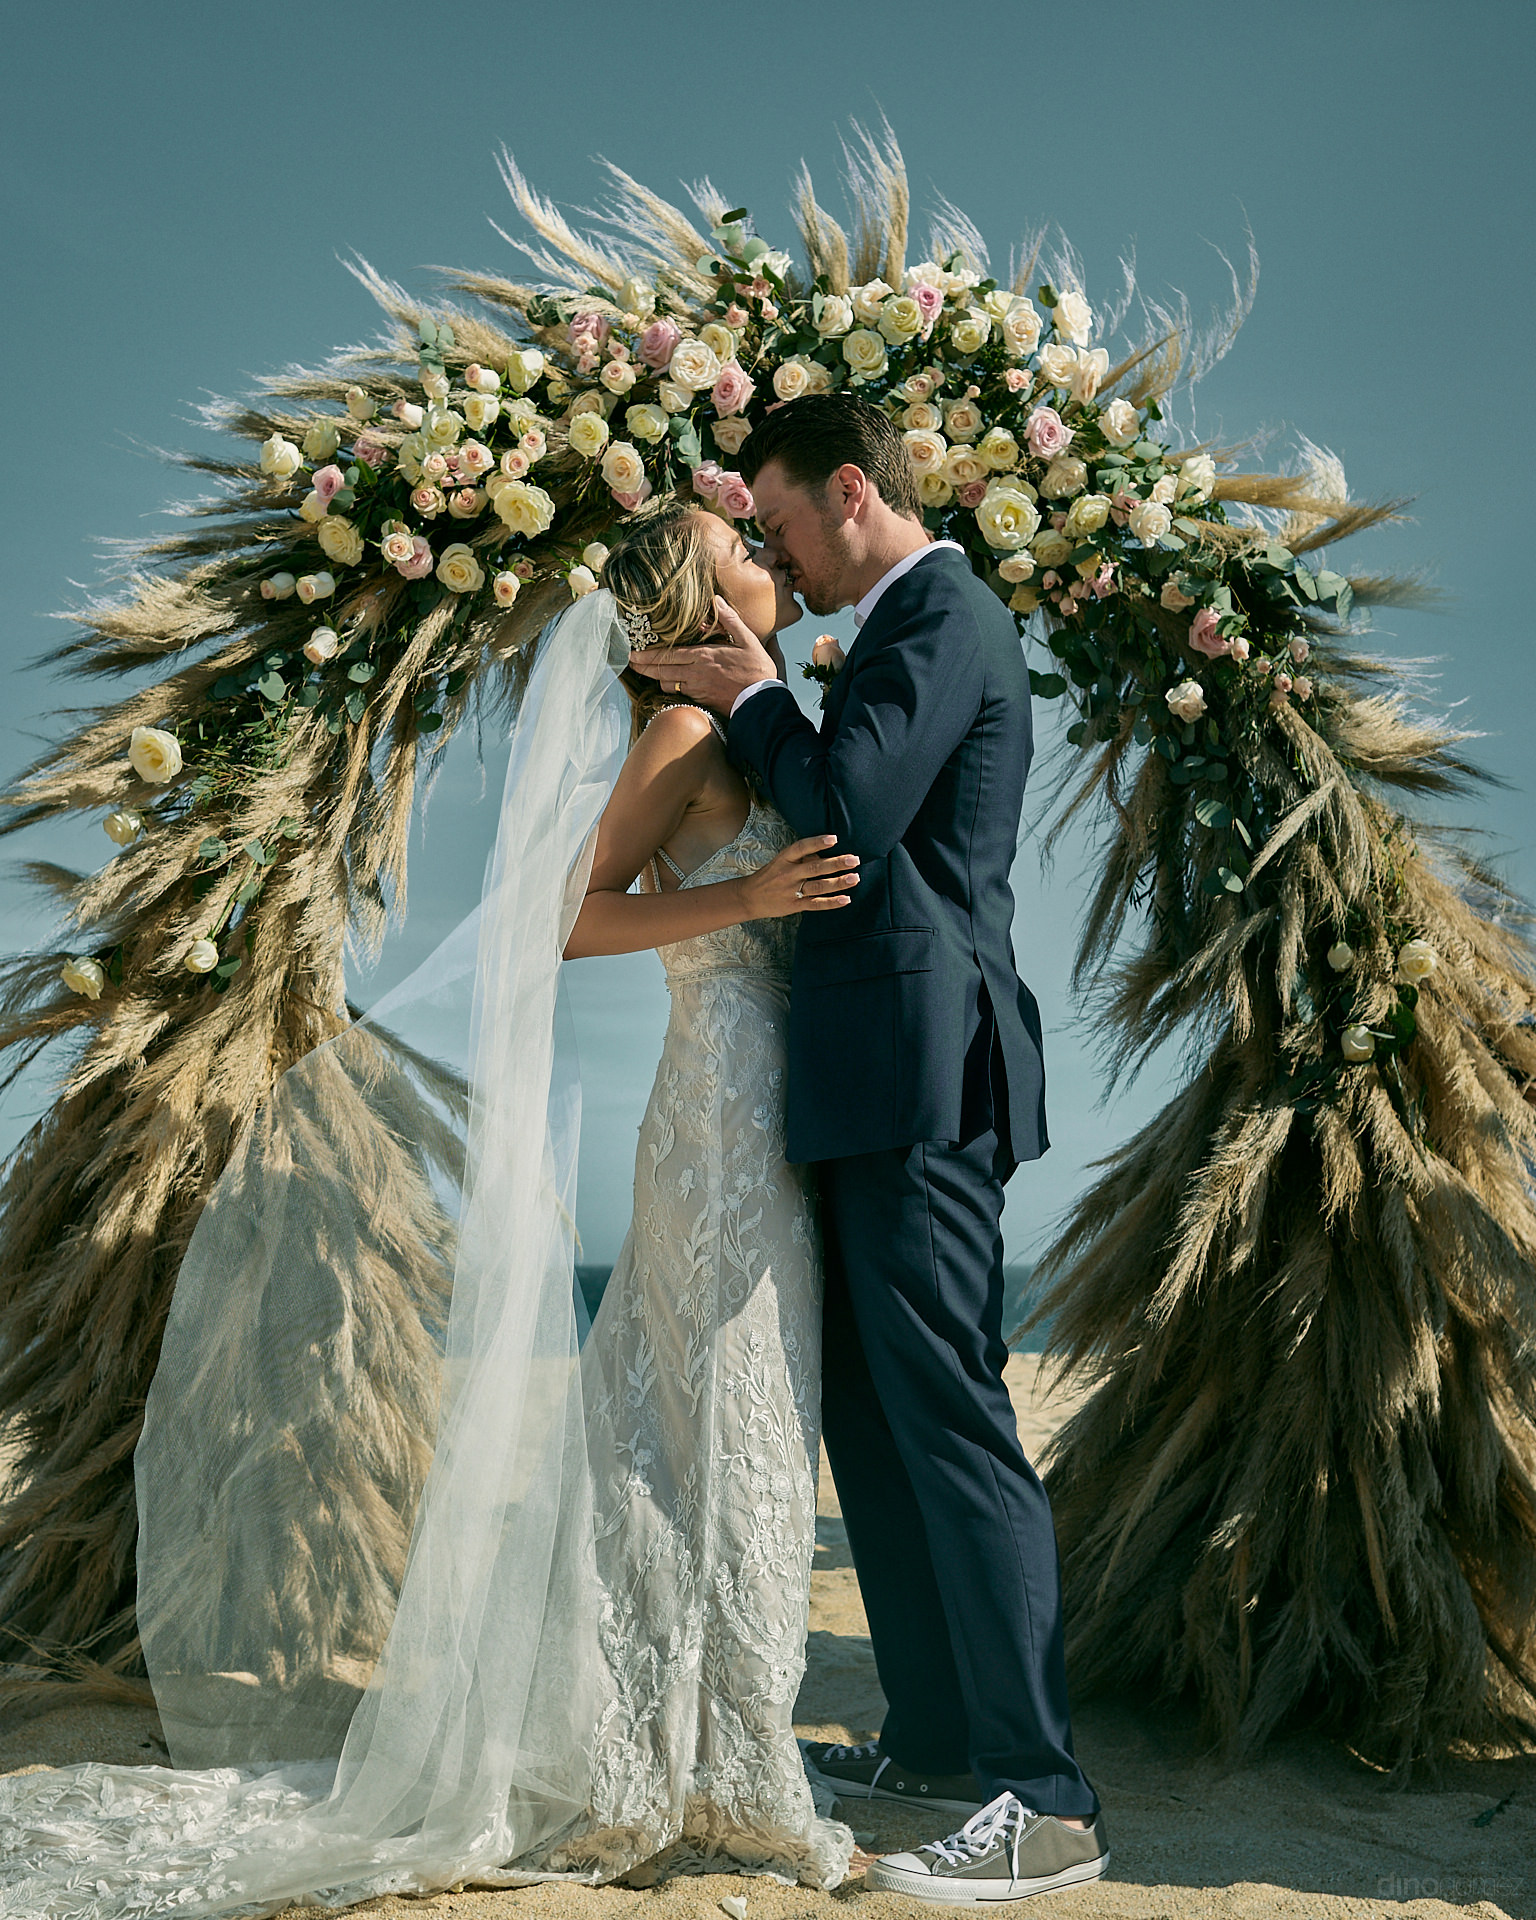 Hire The Best Destination Wedding Photographer In Cabo